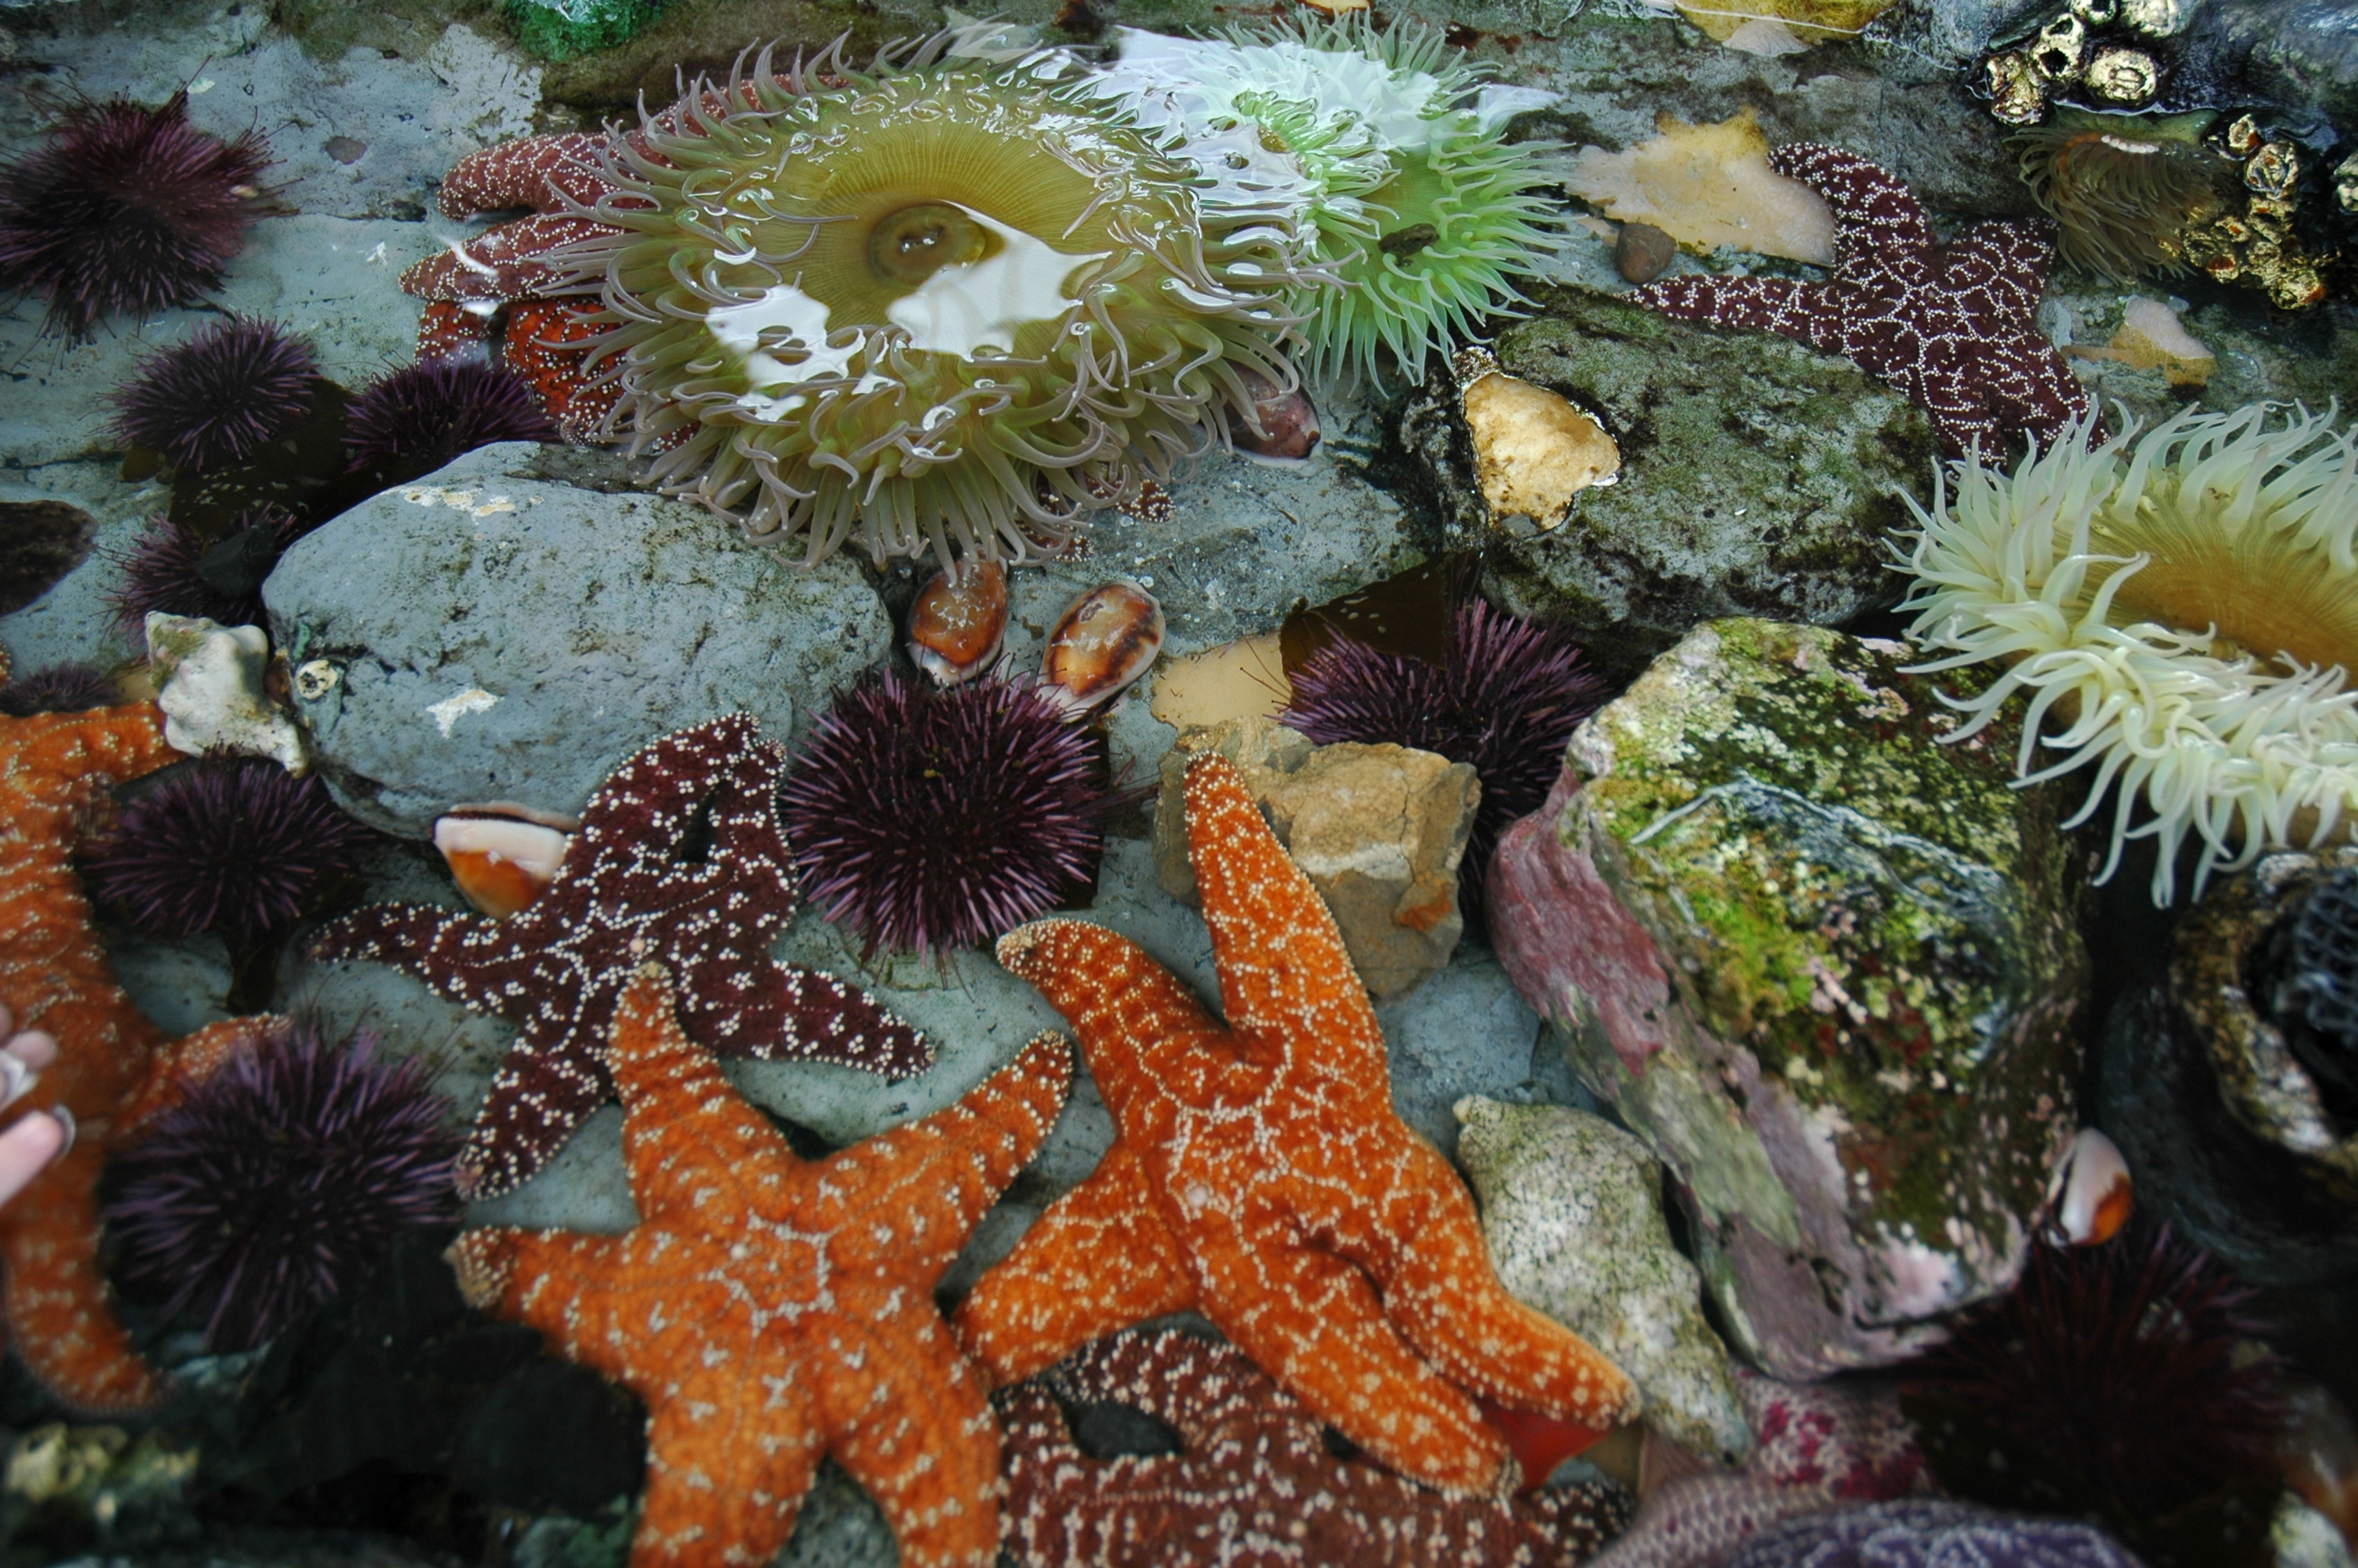 Tidepool animals